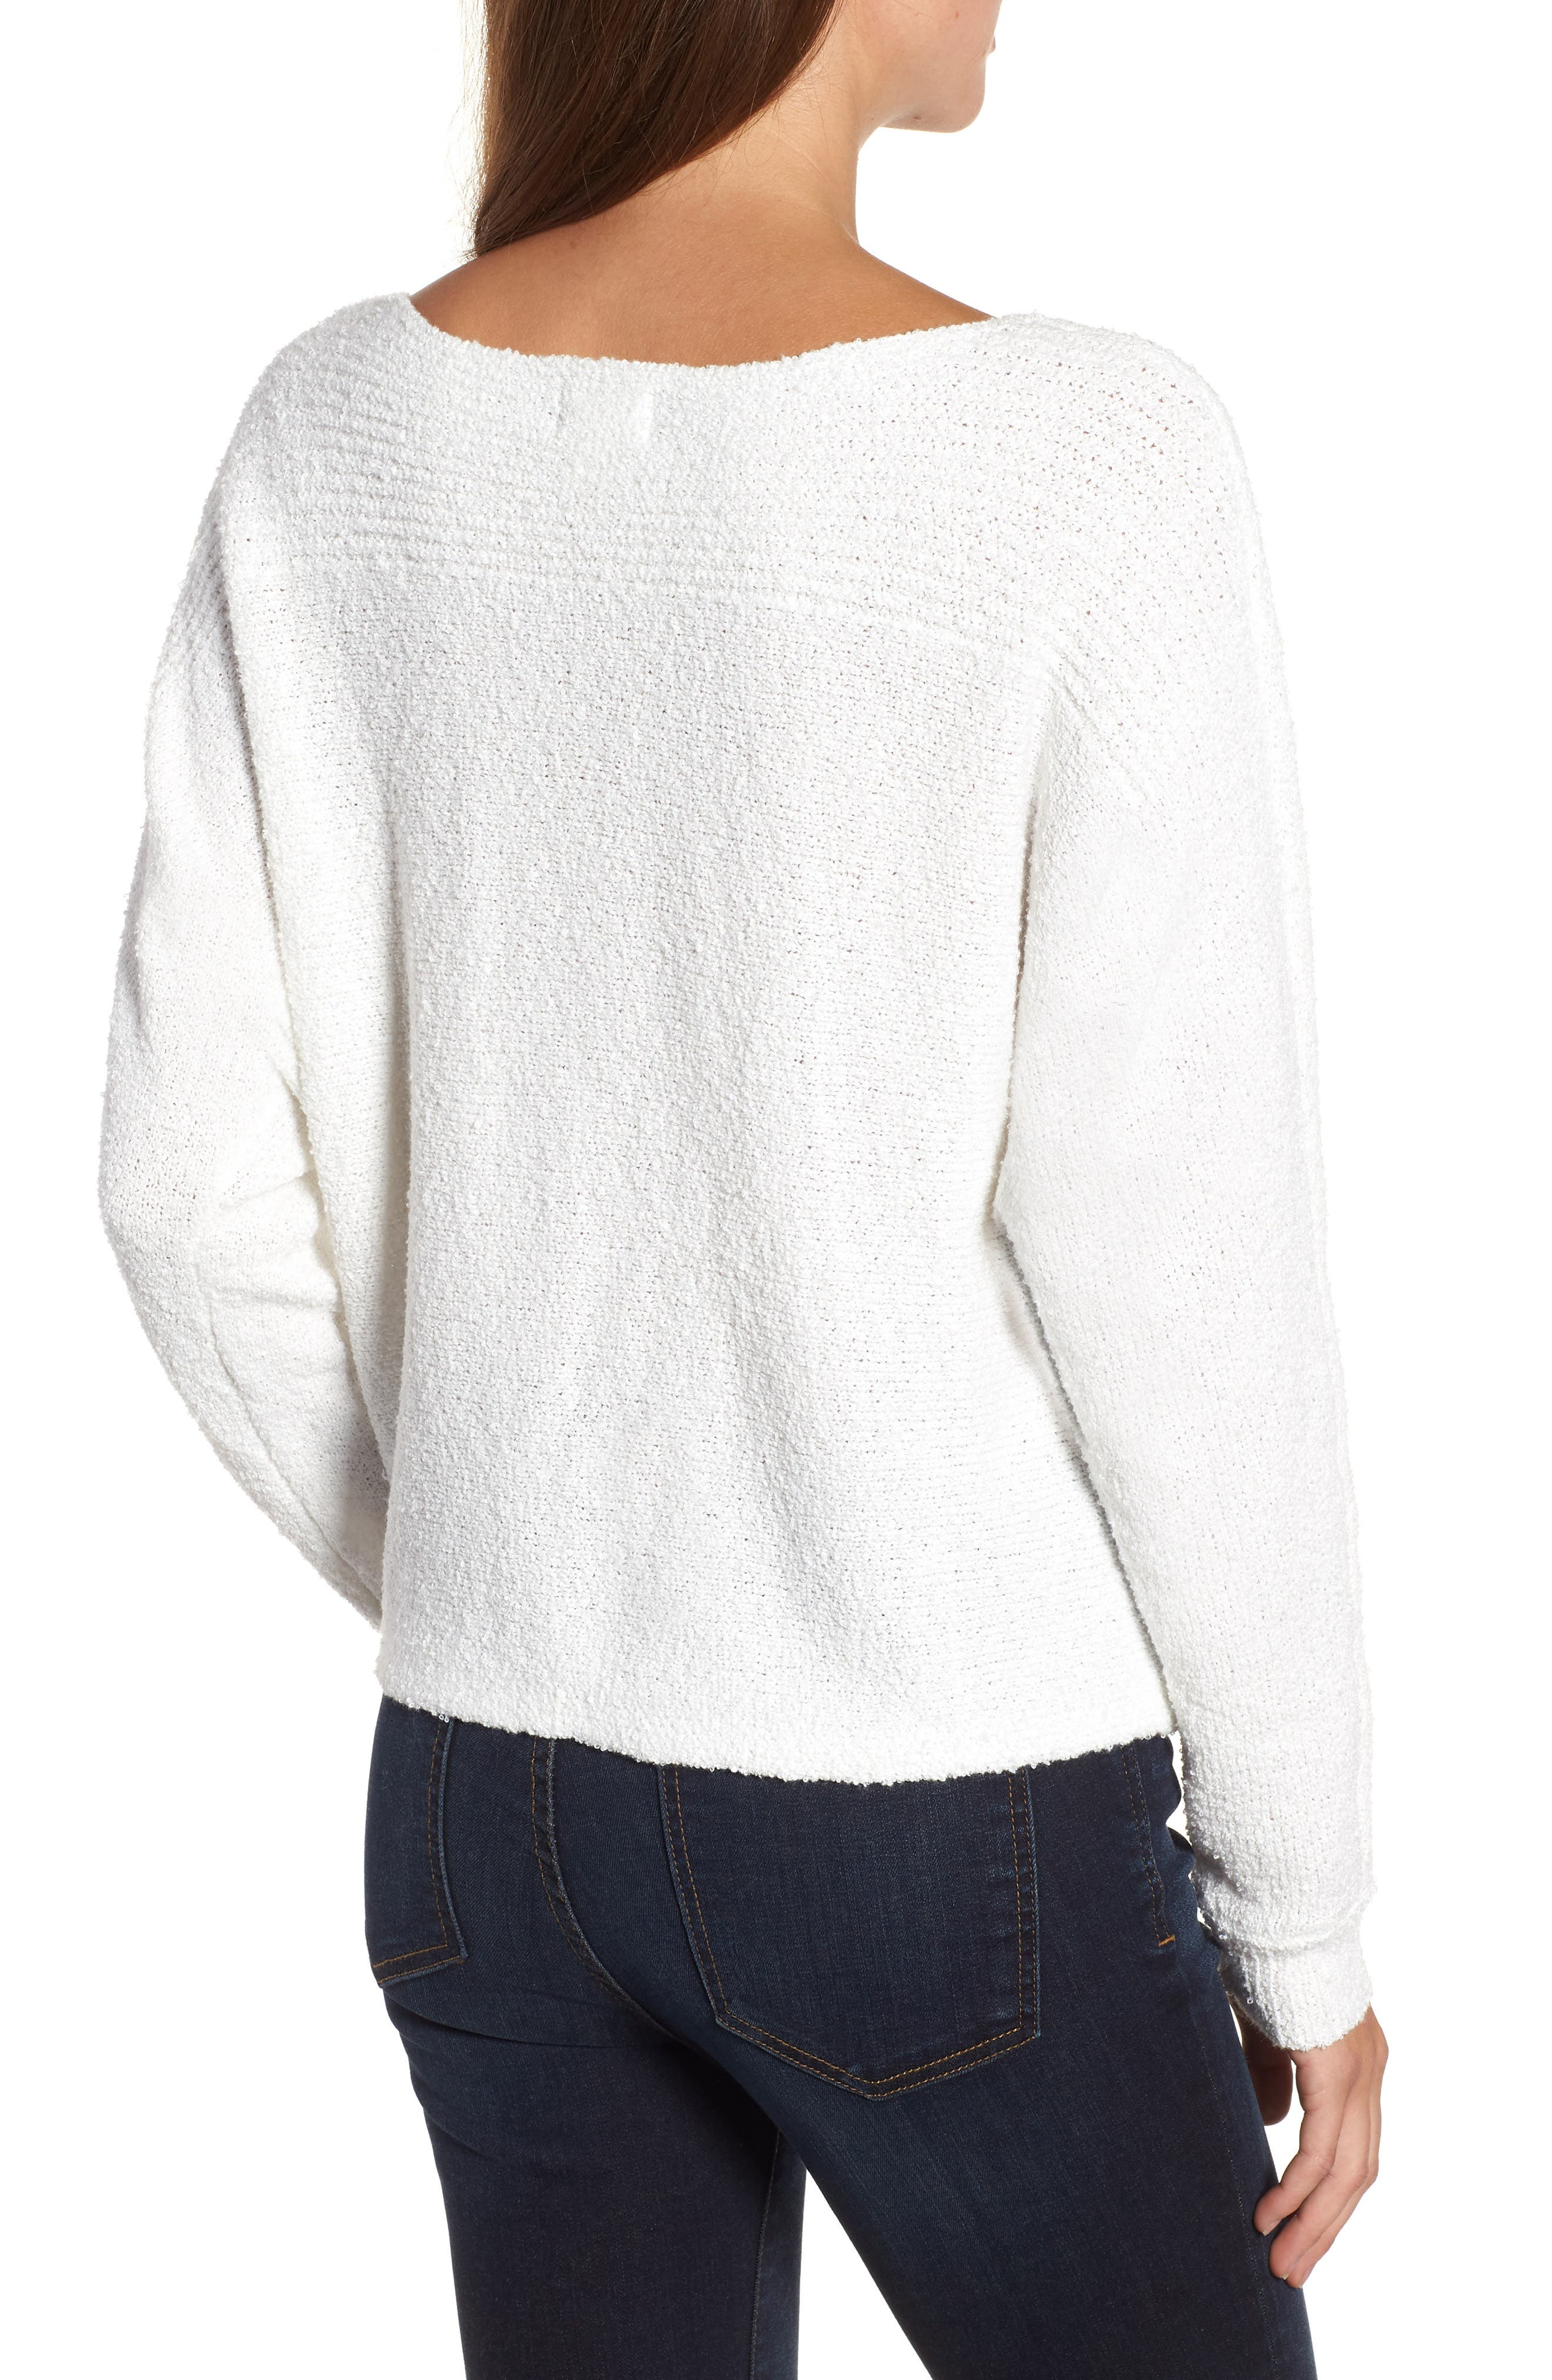 Calson<sup>®</sup> Dolman Sleeve Sweater,                             Alternate thumbnail 10, color,